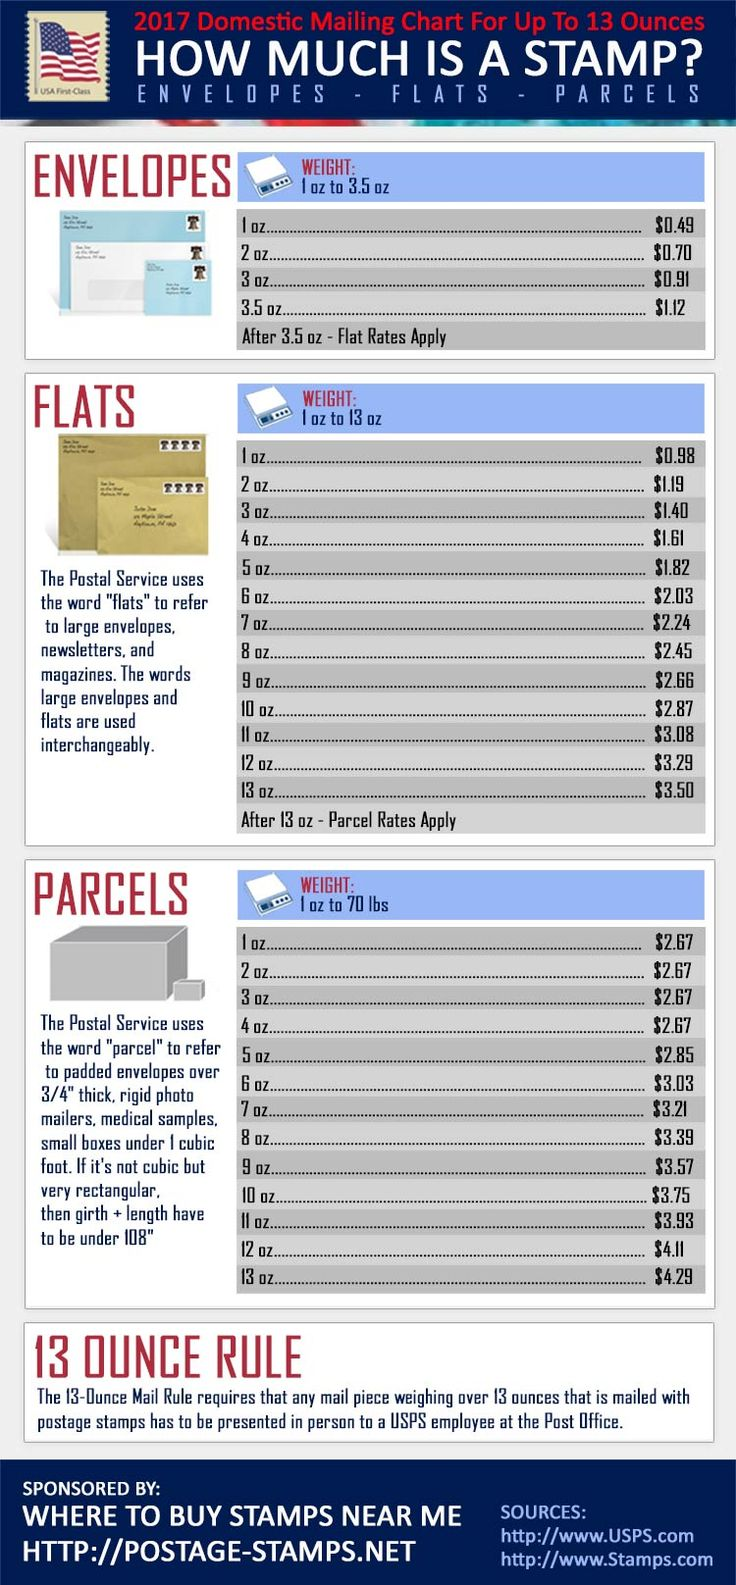 How Much Does a Postage Stamp Cost? Get the current rates for US First Class Postage on envelopes, flats, and parcels.